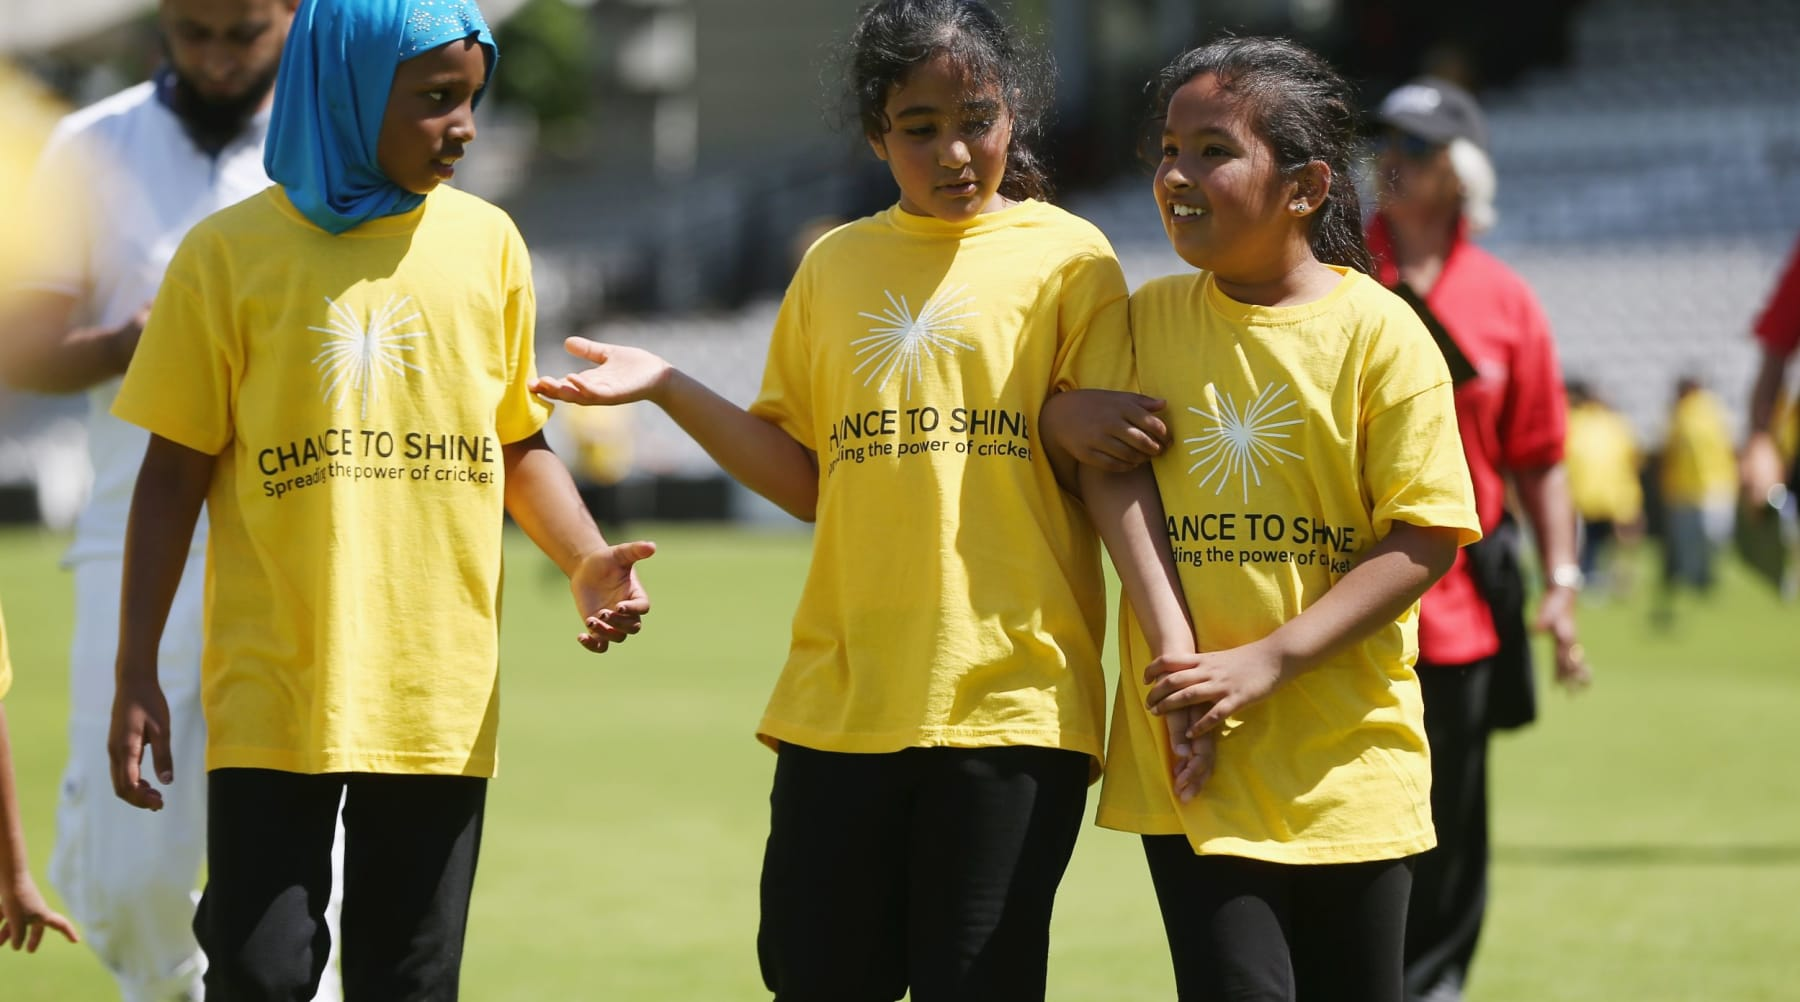 We aim to give all children the opportunity to play, learn and develop through cricket